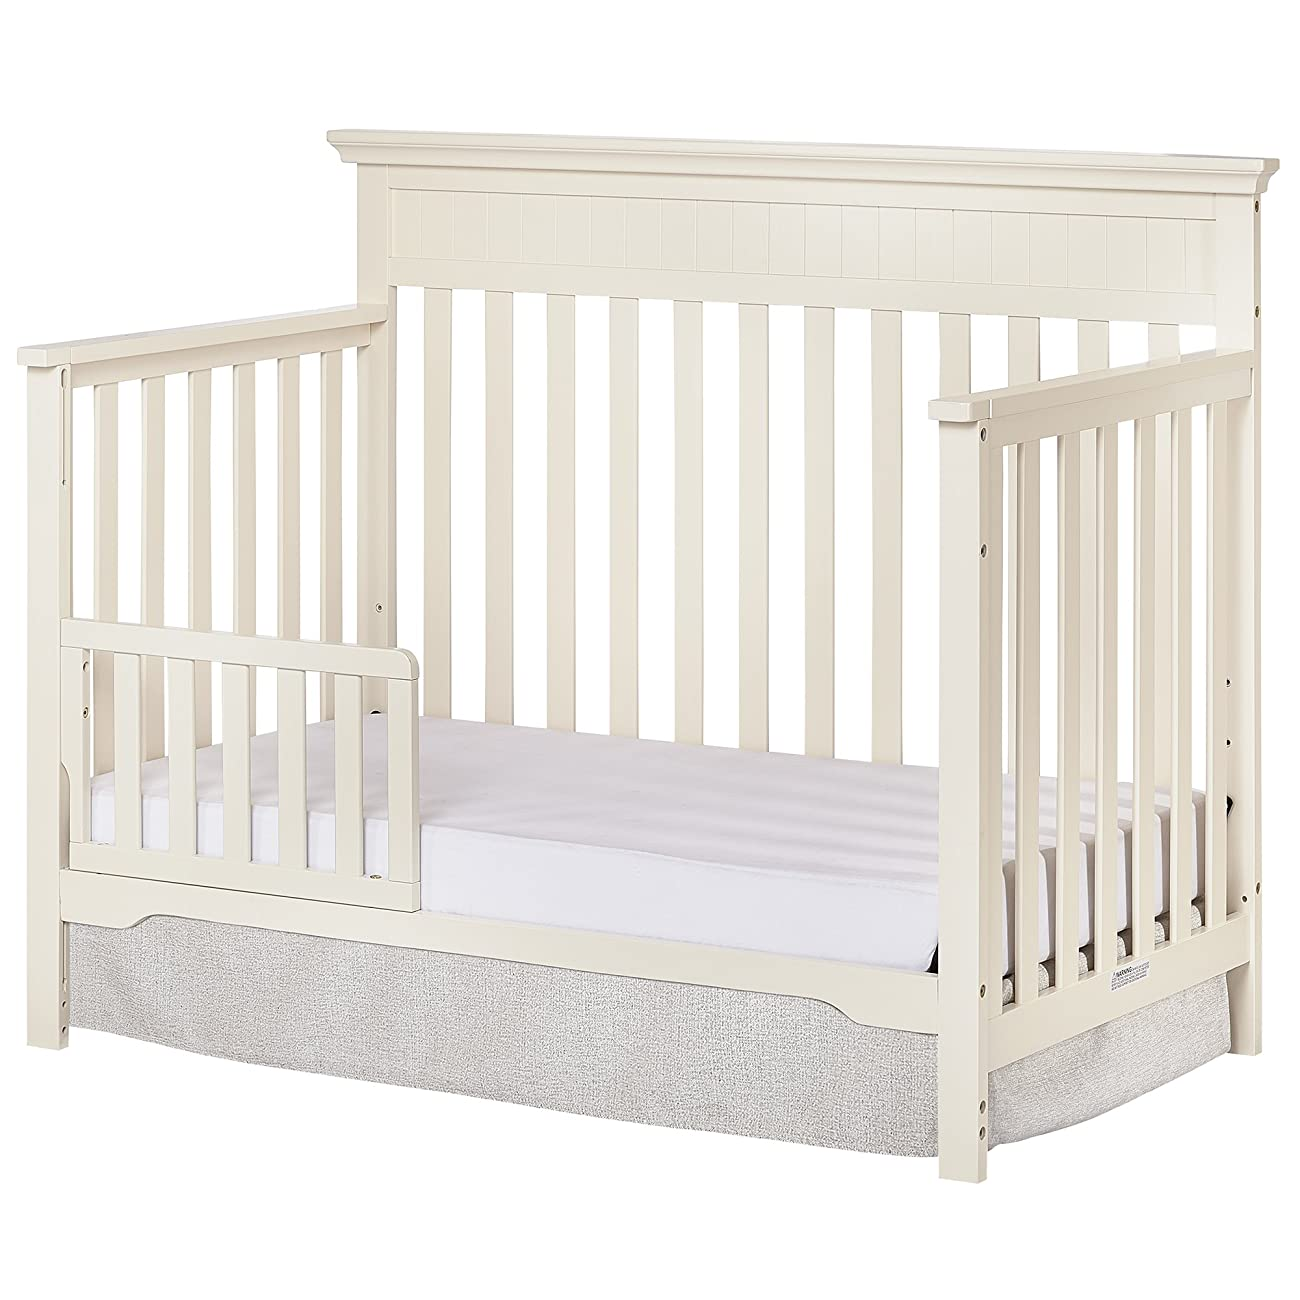 Dream On Me Chesapeake 5-In-1 Convertible Crib, French White 3